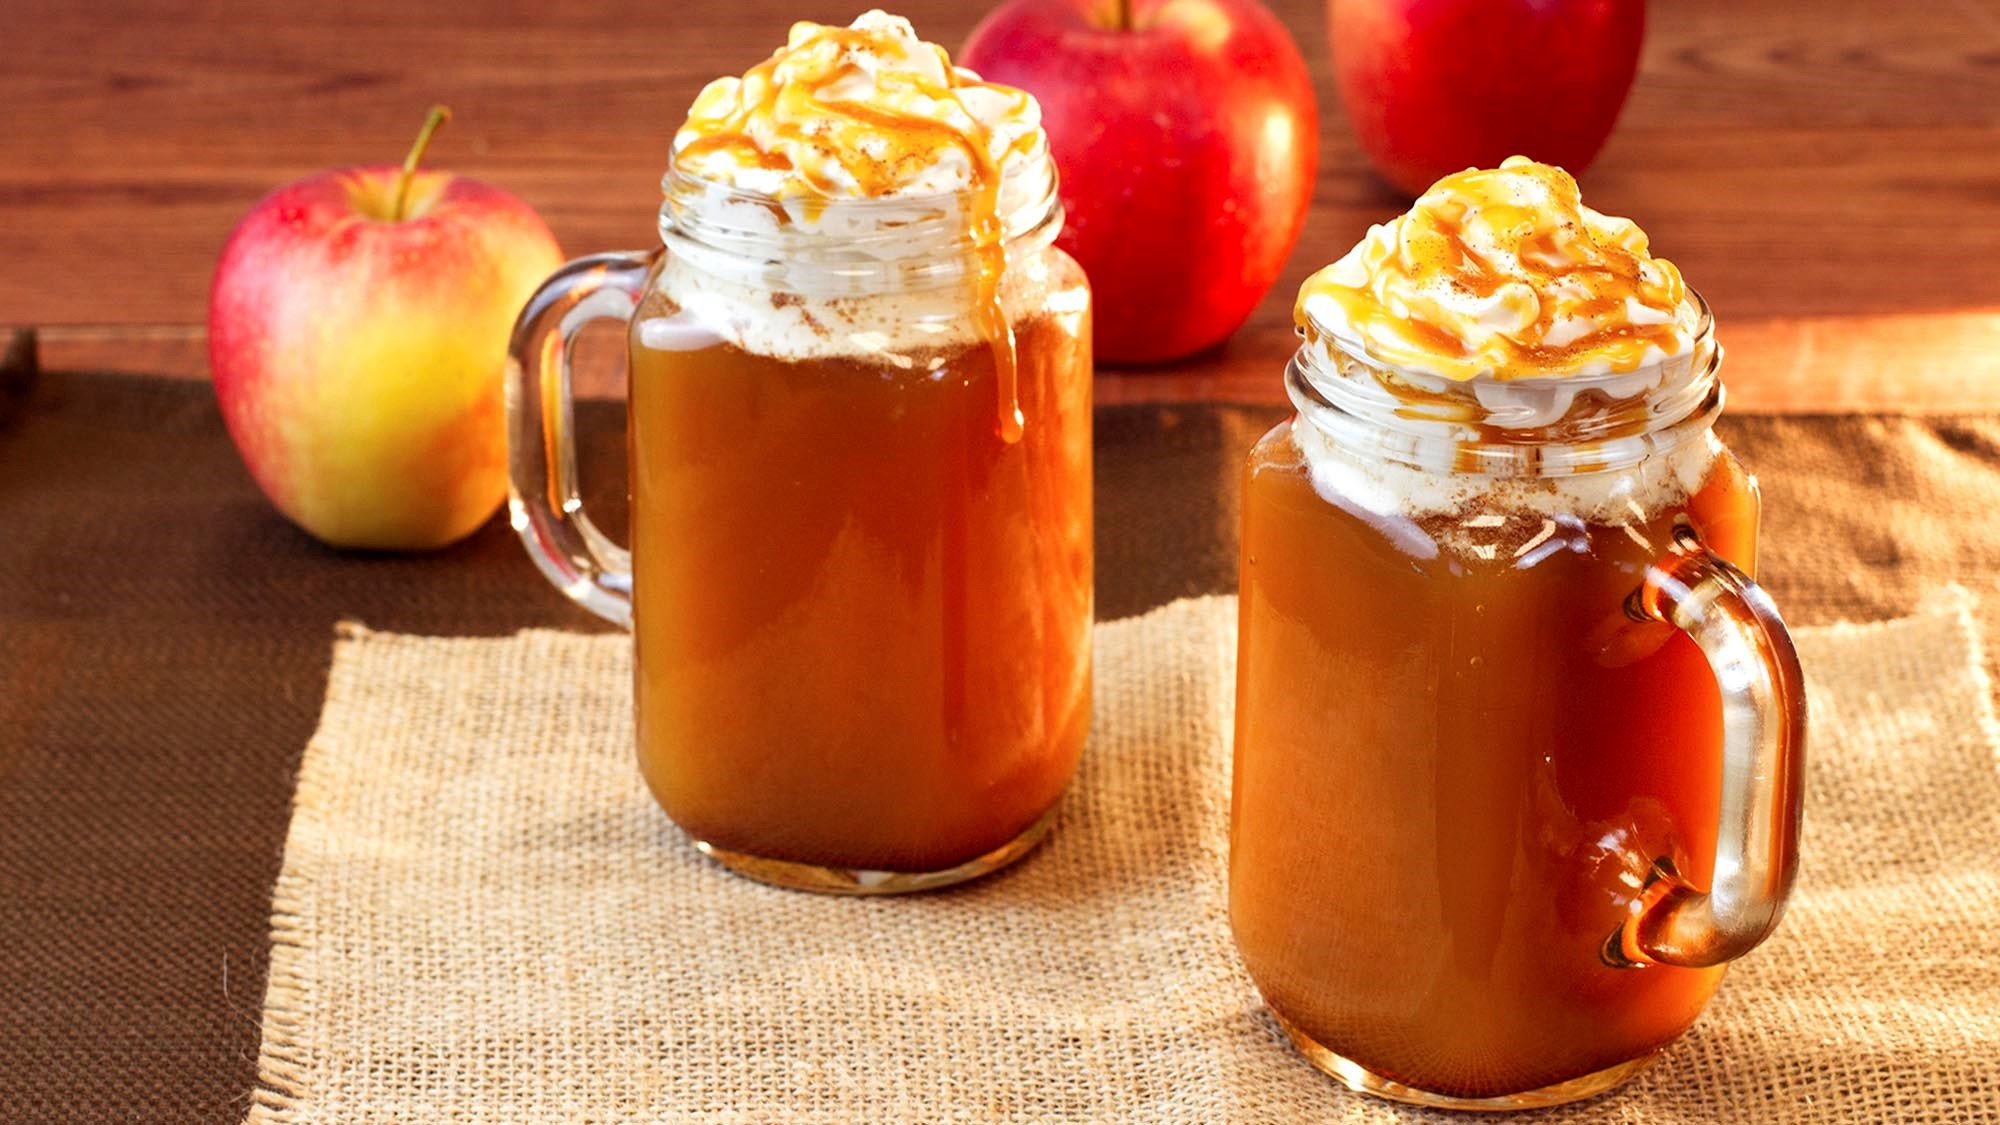 McCormick Spiced Caramel Apple Cider